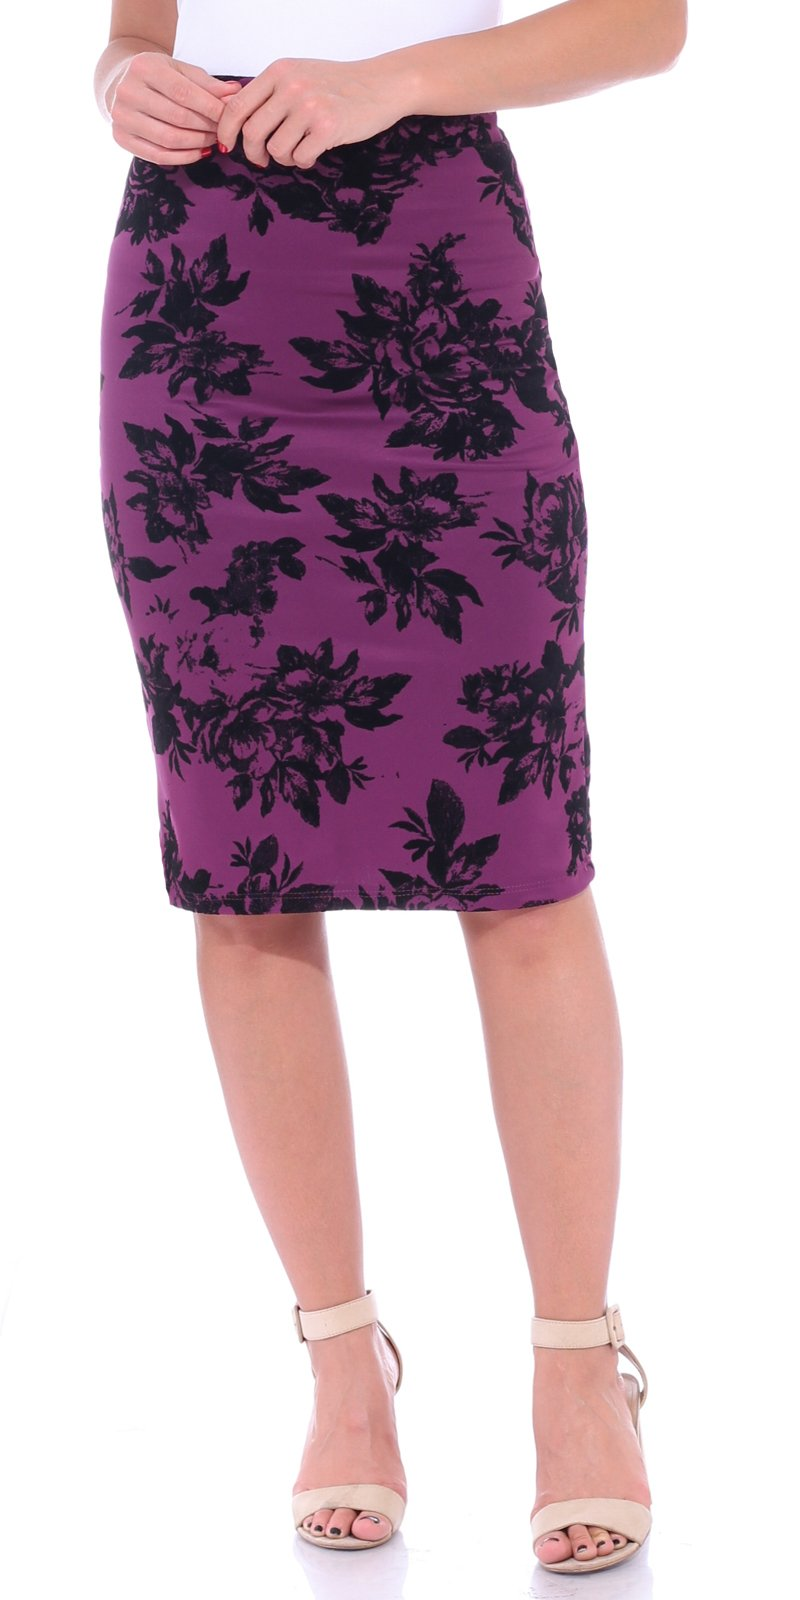 Popana Women's Stretch Pencil Skirt Knee Length High Waist for Work Made in USA Large Eggplant